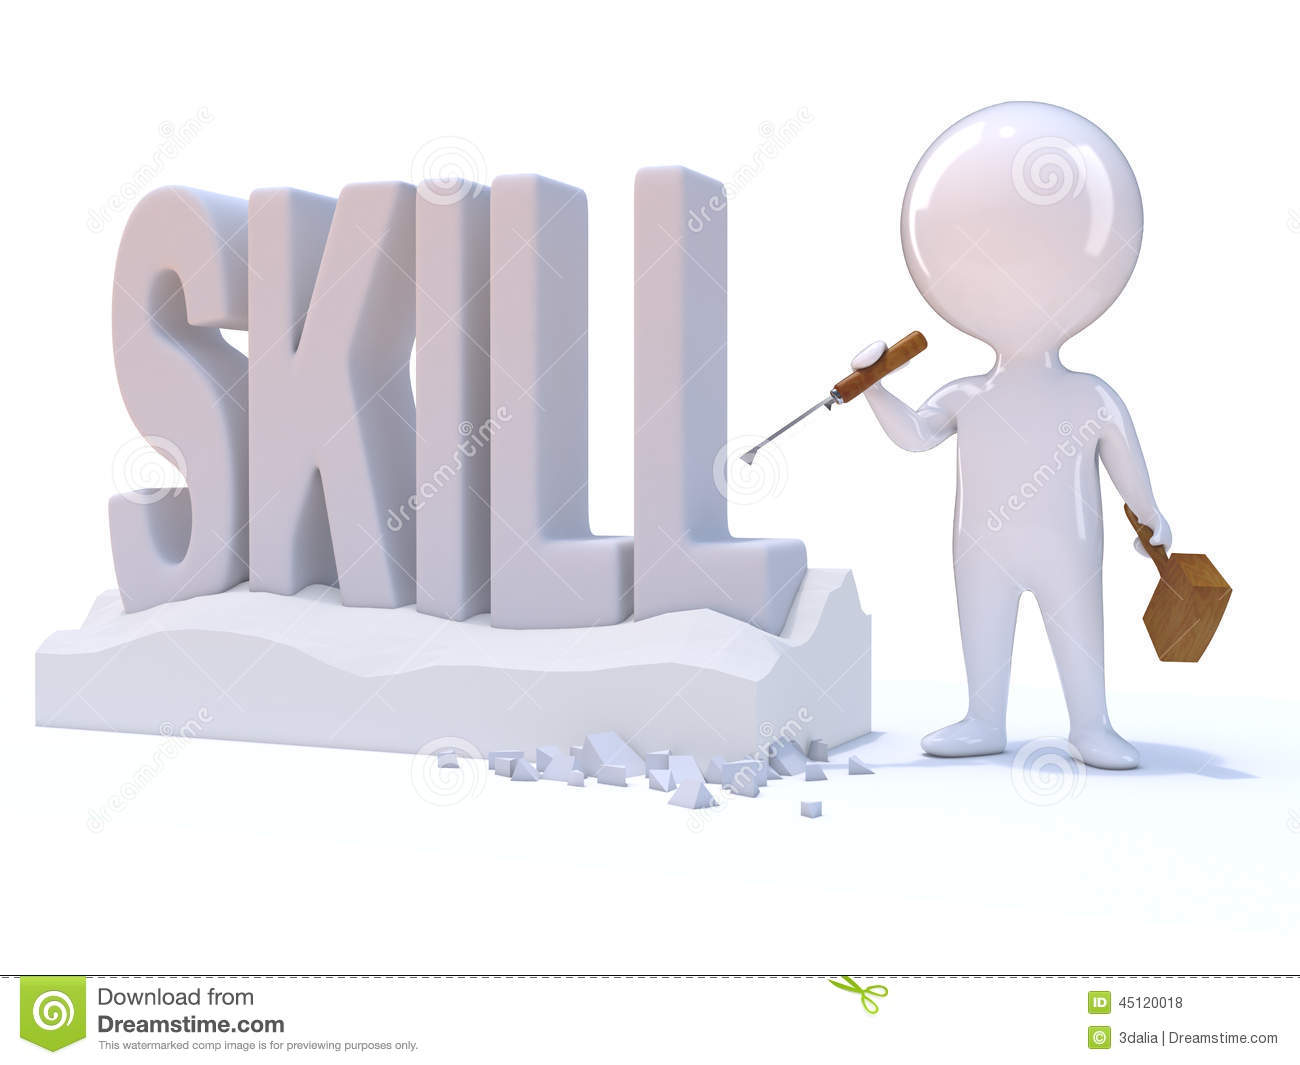 the word skill. royalty-free illustration. download 3d little man carves the word skill o